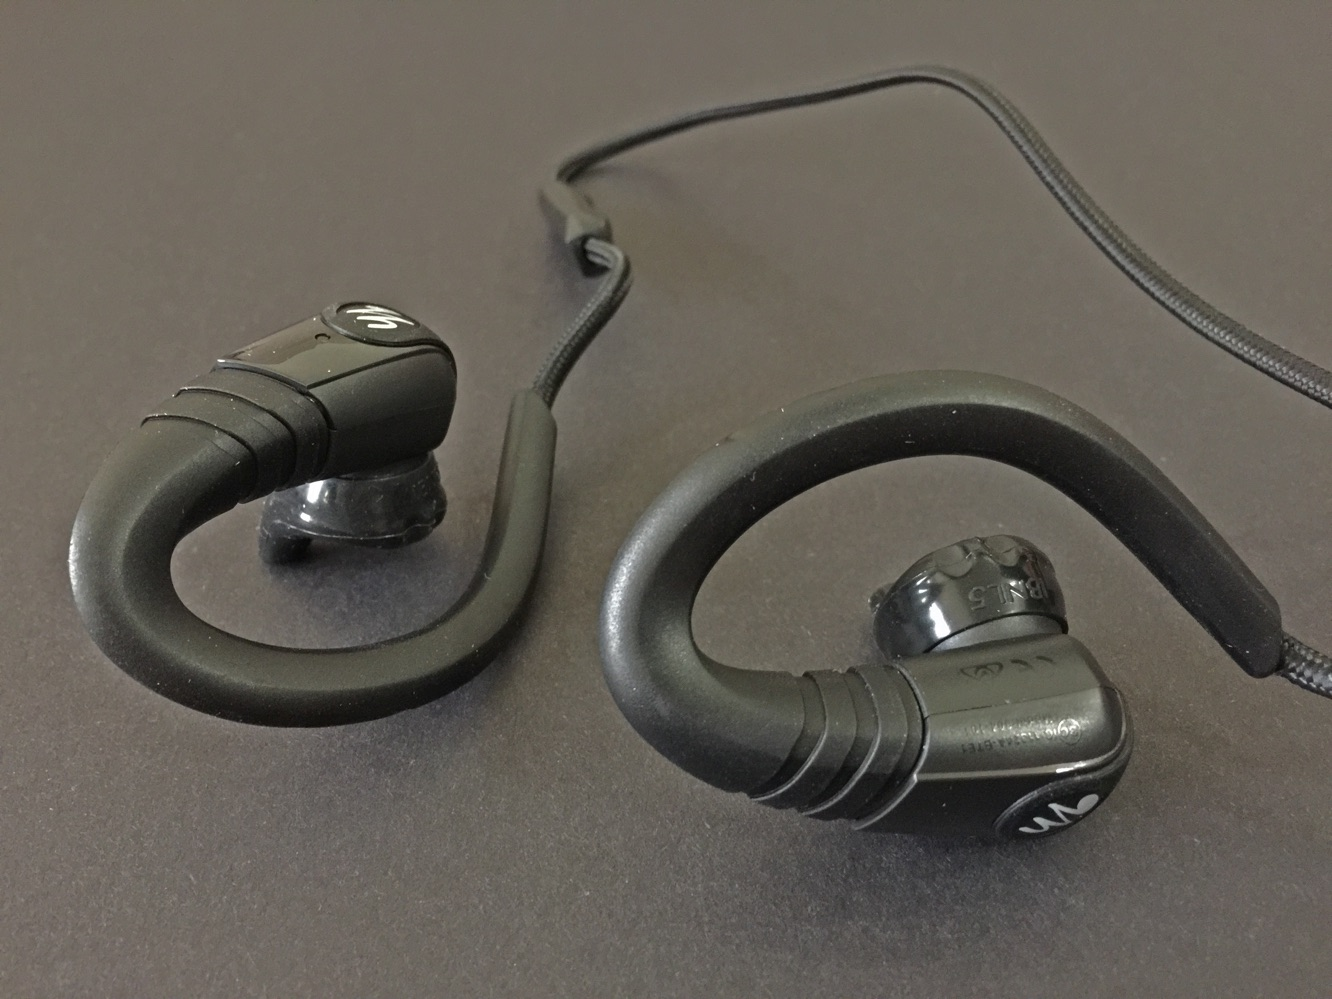 Review: Yurbuds Liberty Wireless Earphones